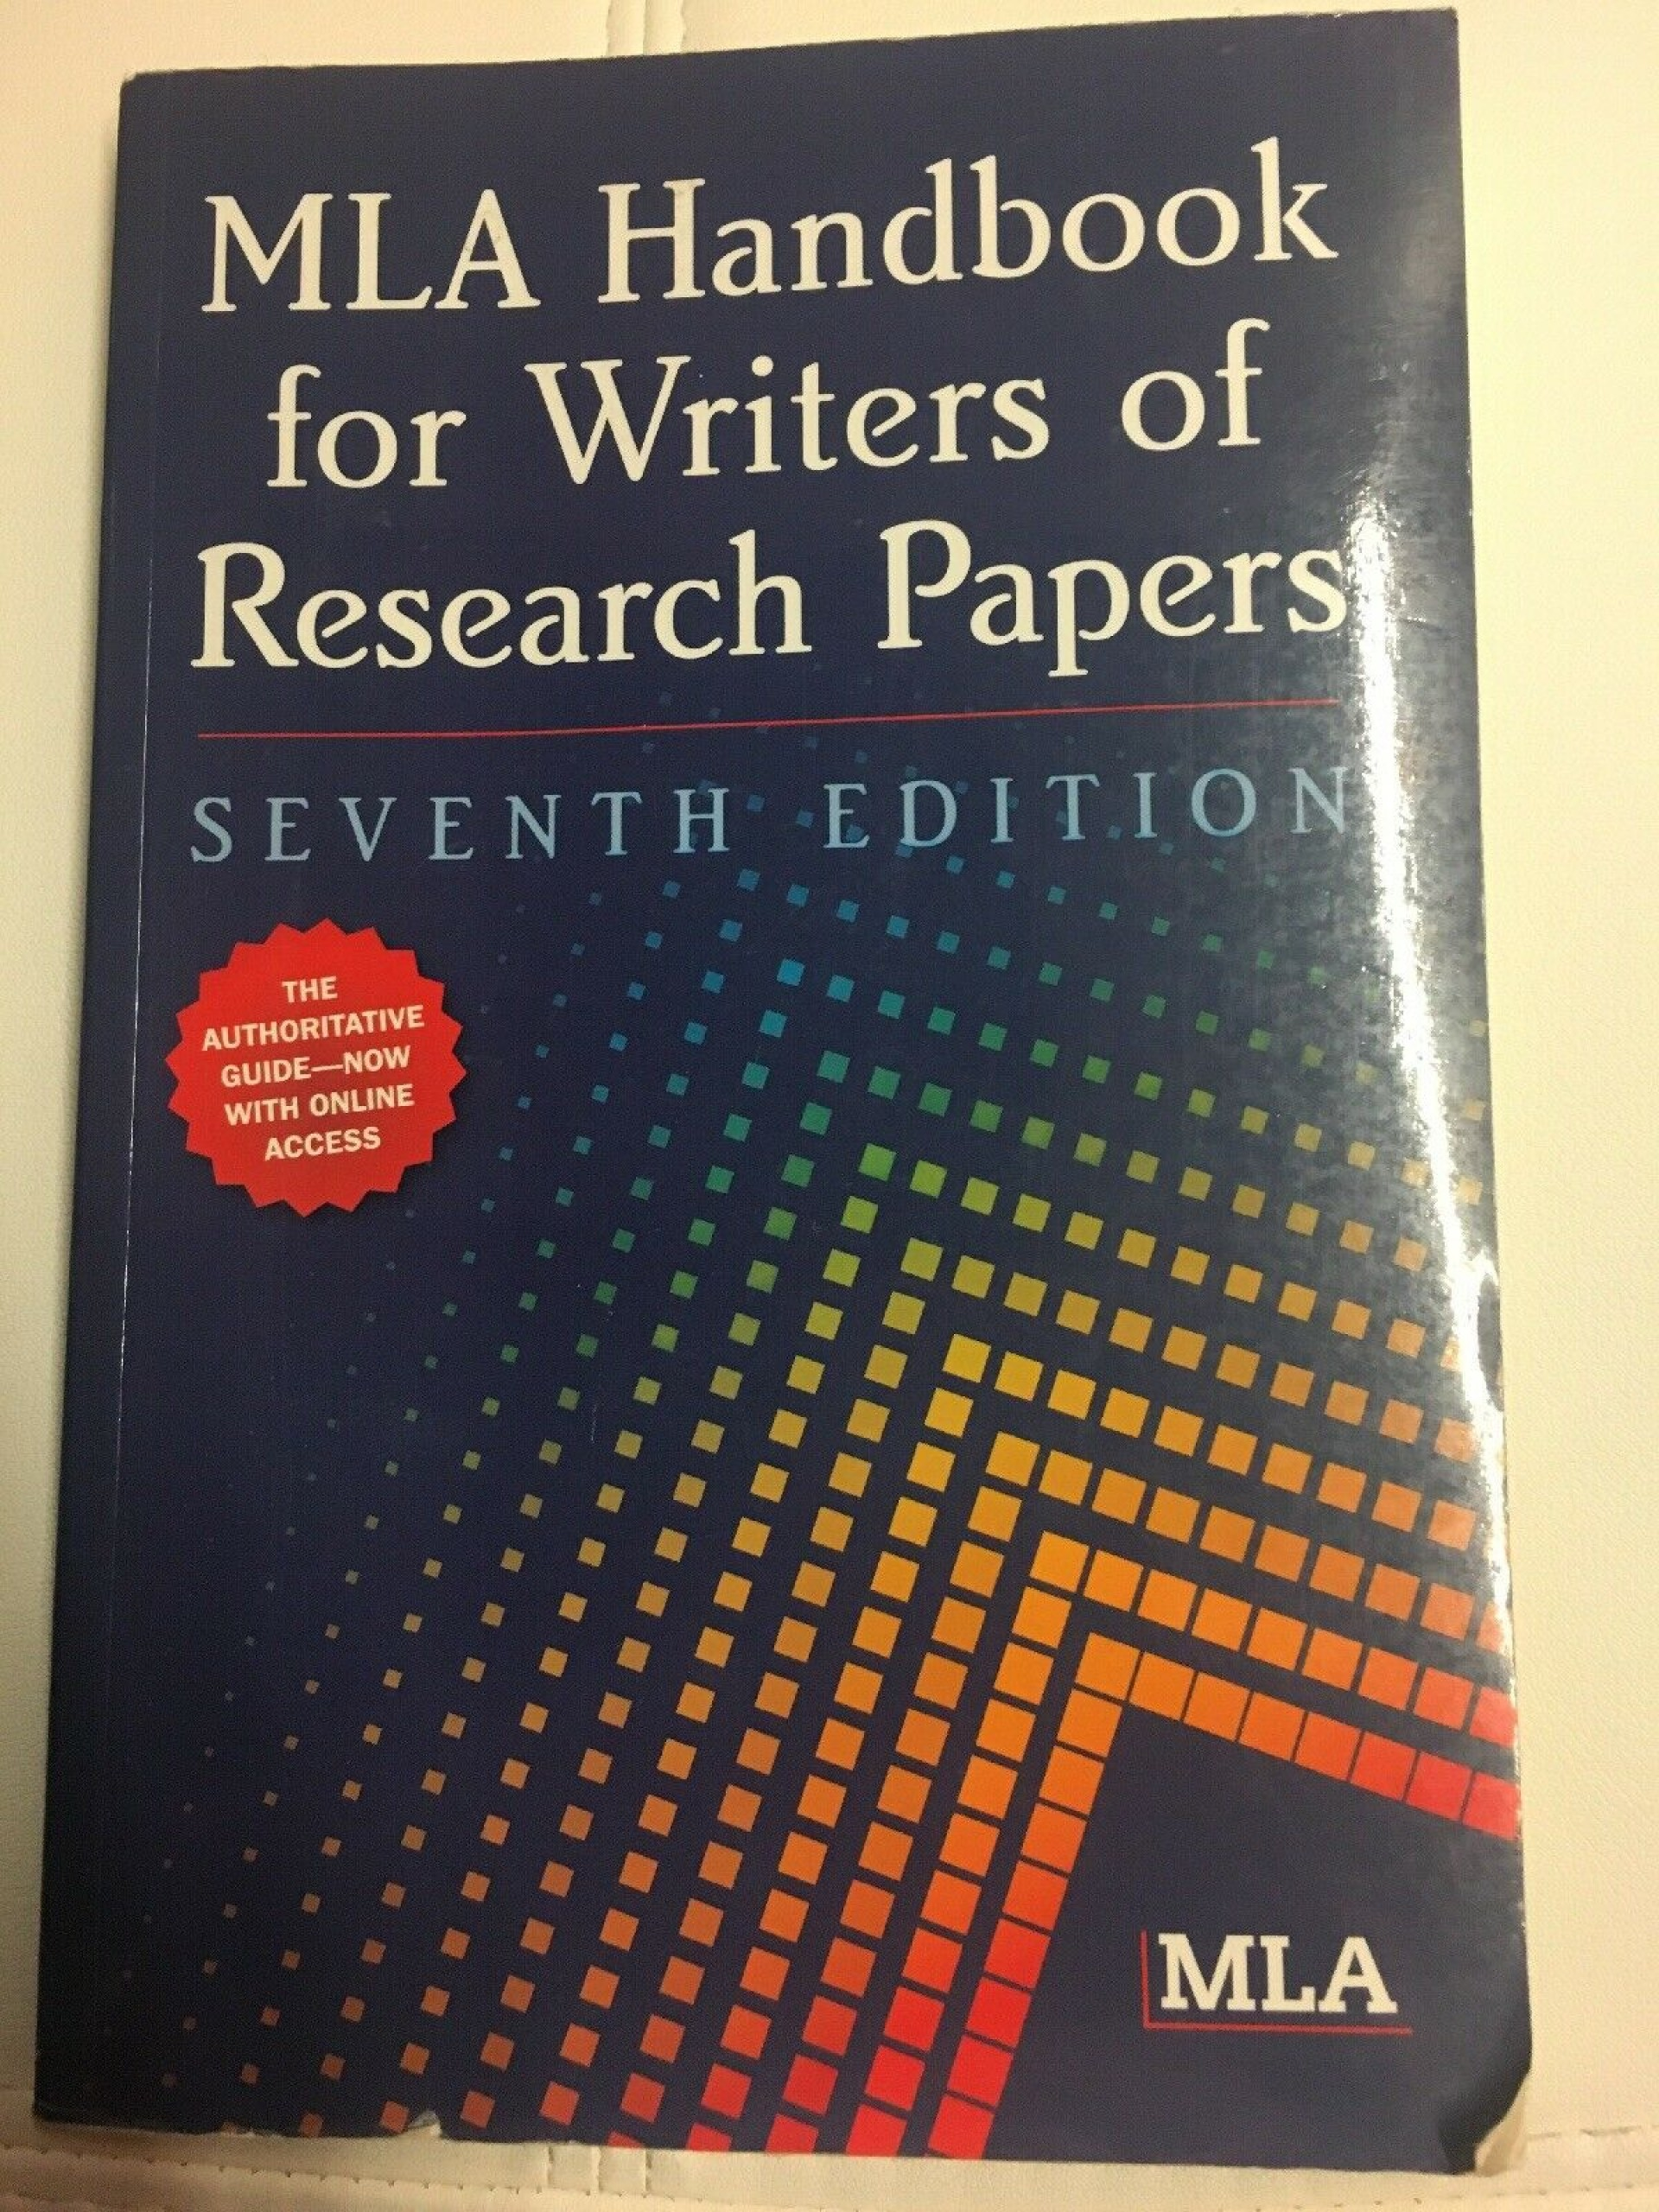 007 Mla Handbook For Writing Research Papers Paper S Frightening Writers Of 8th Edition Pdf Free Download According To The 1920